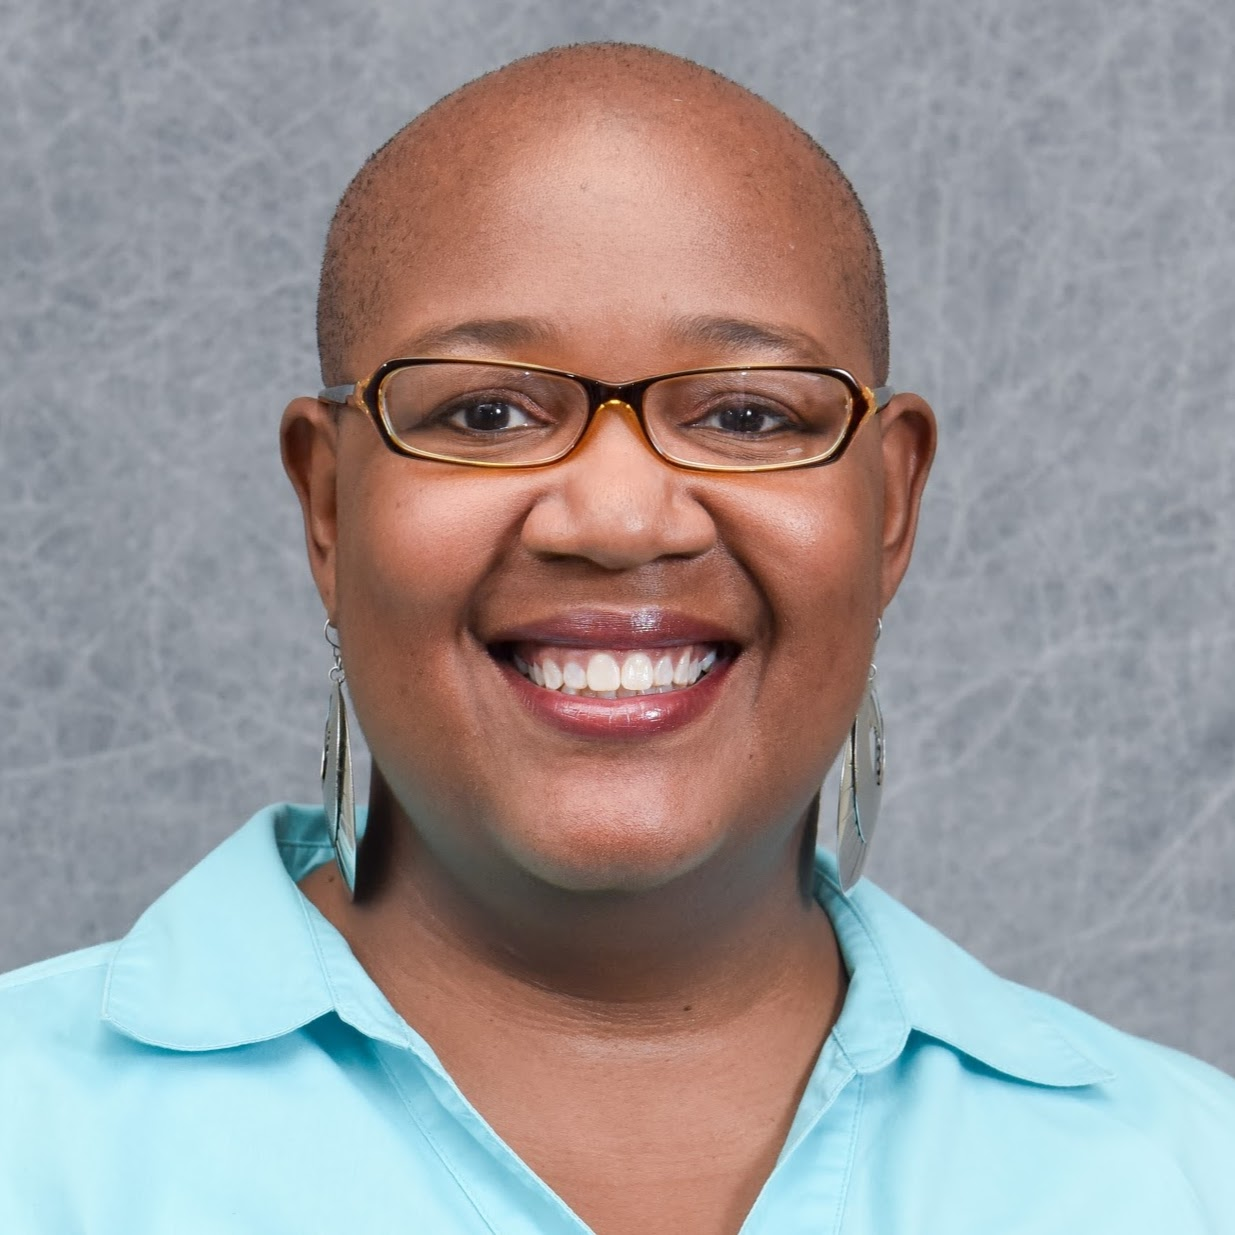 Headshot of Felysha Jenkins. She is bald and is wearing long earrings and a light-blue collared shirt.